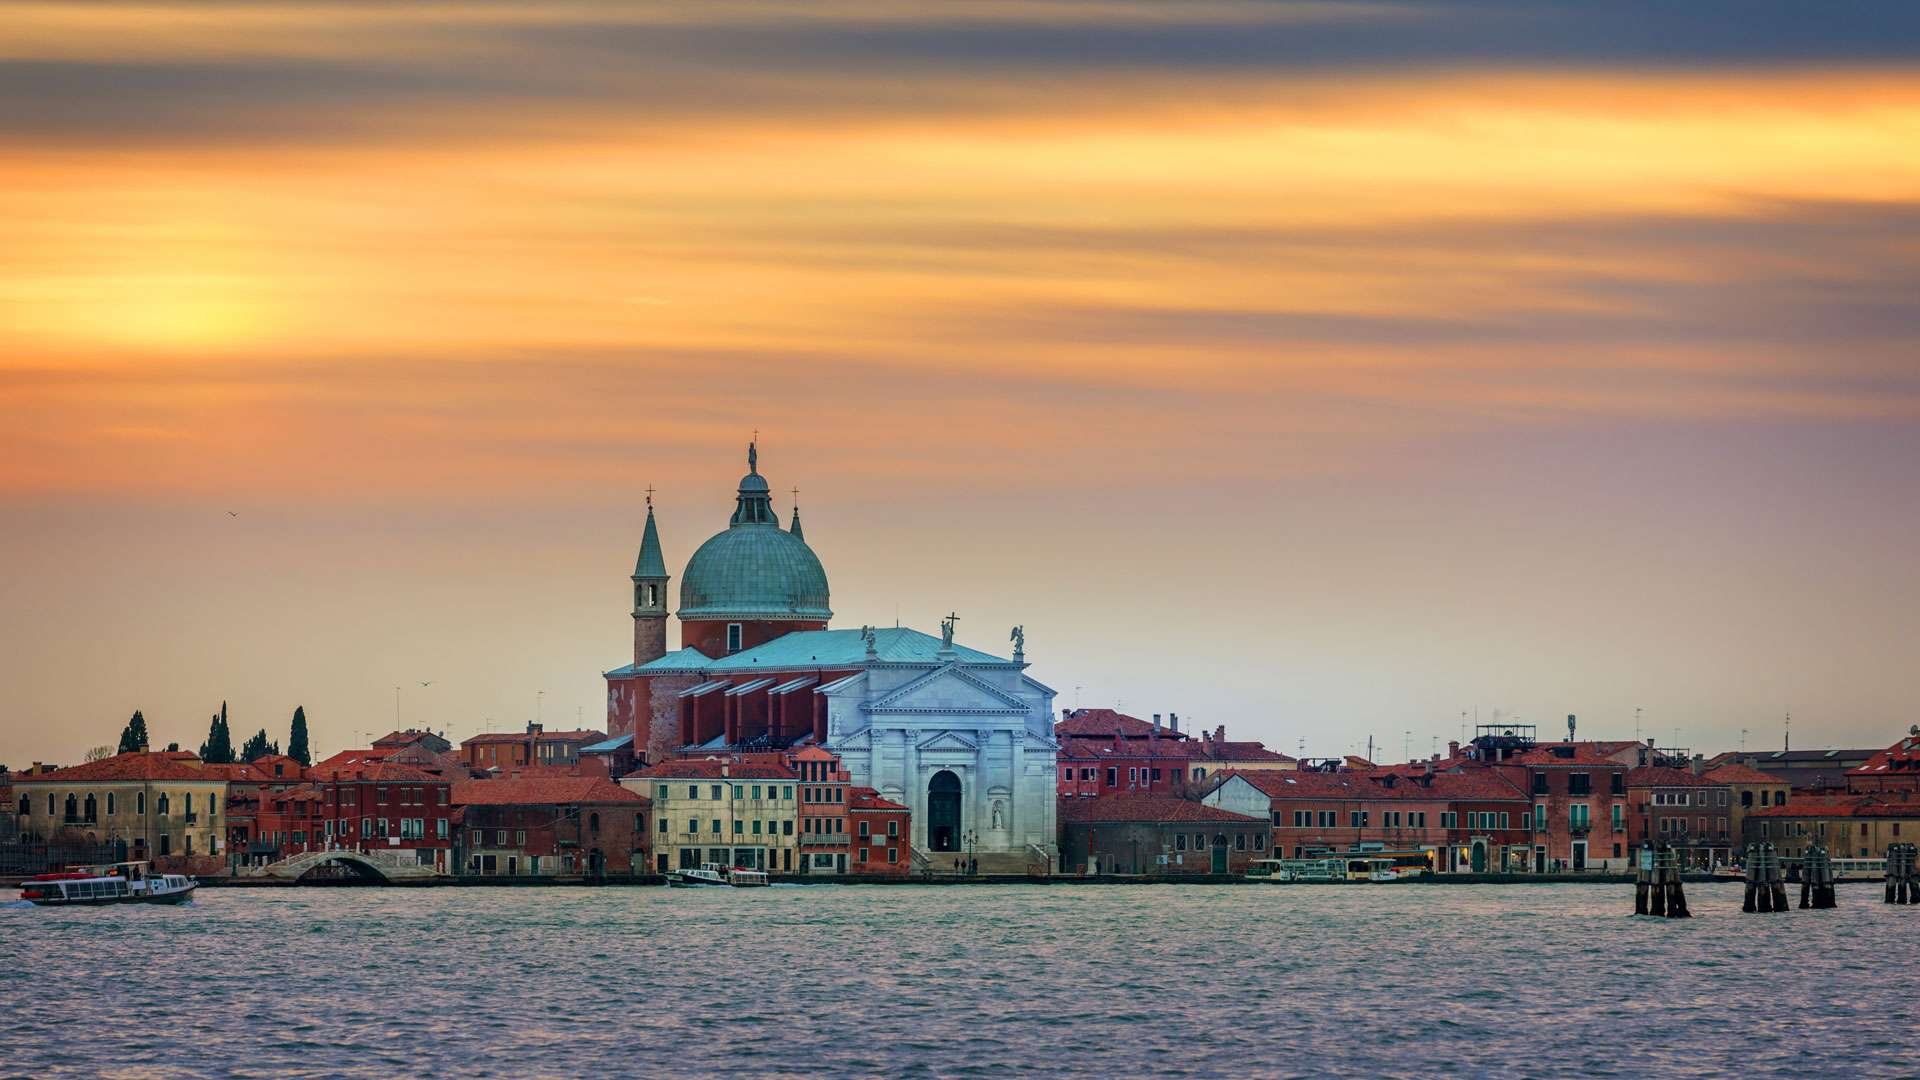 Visiting the Churches of Venice